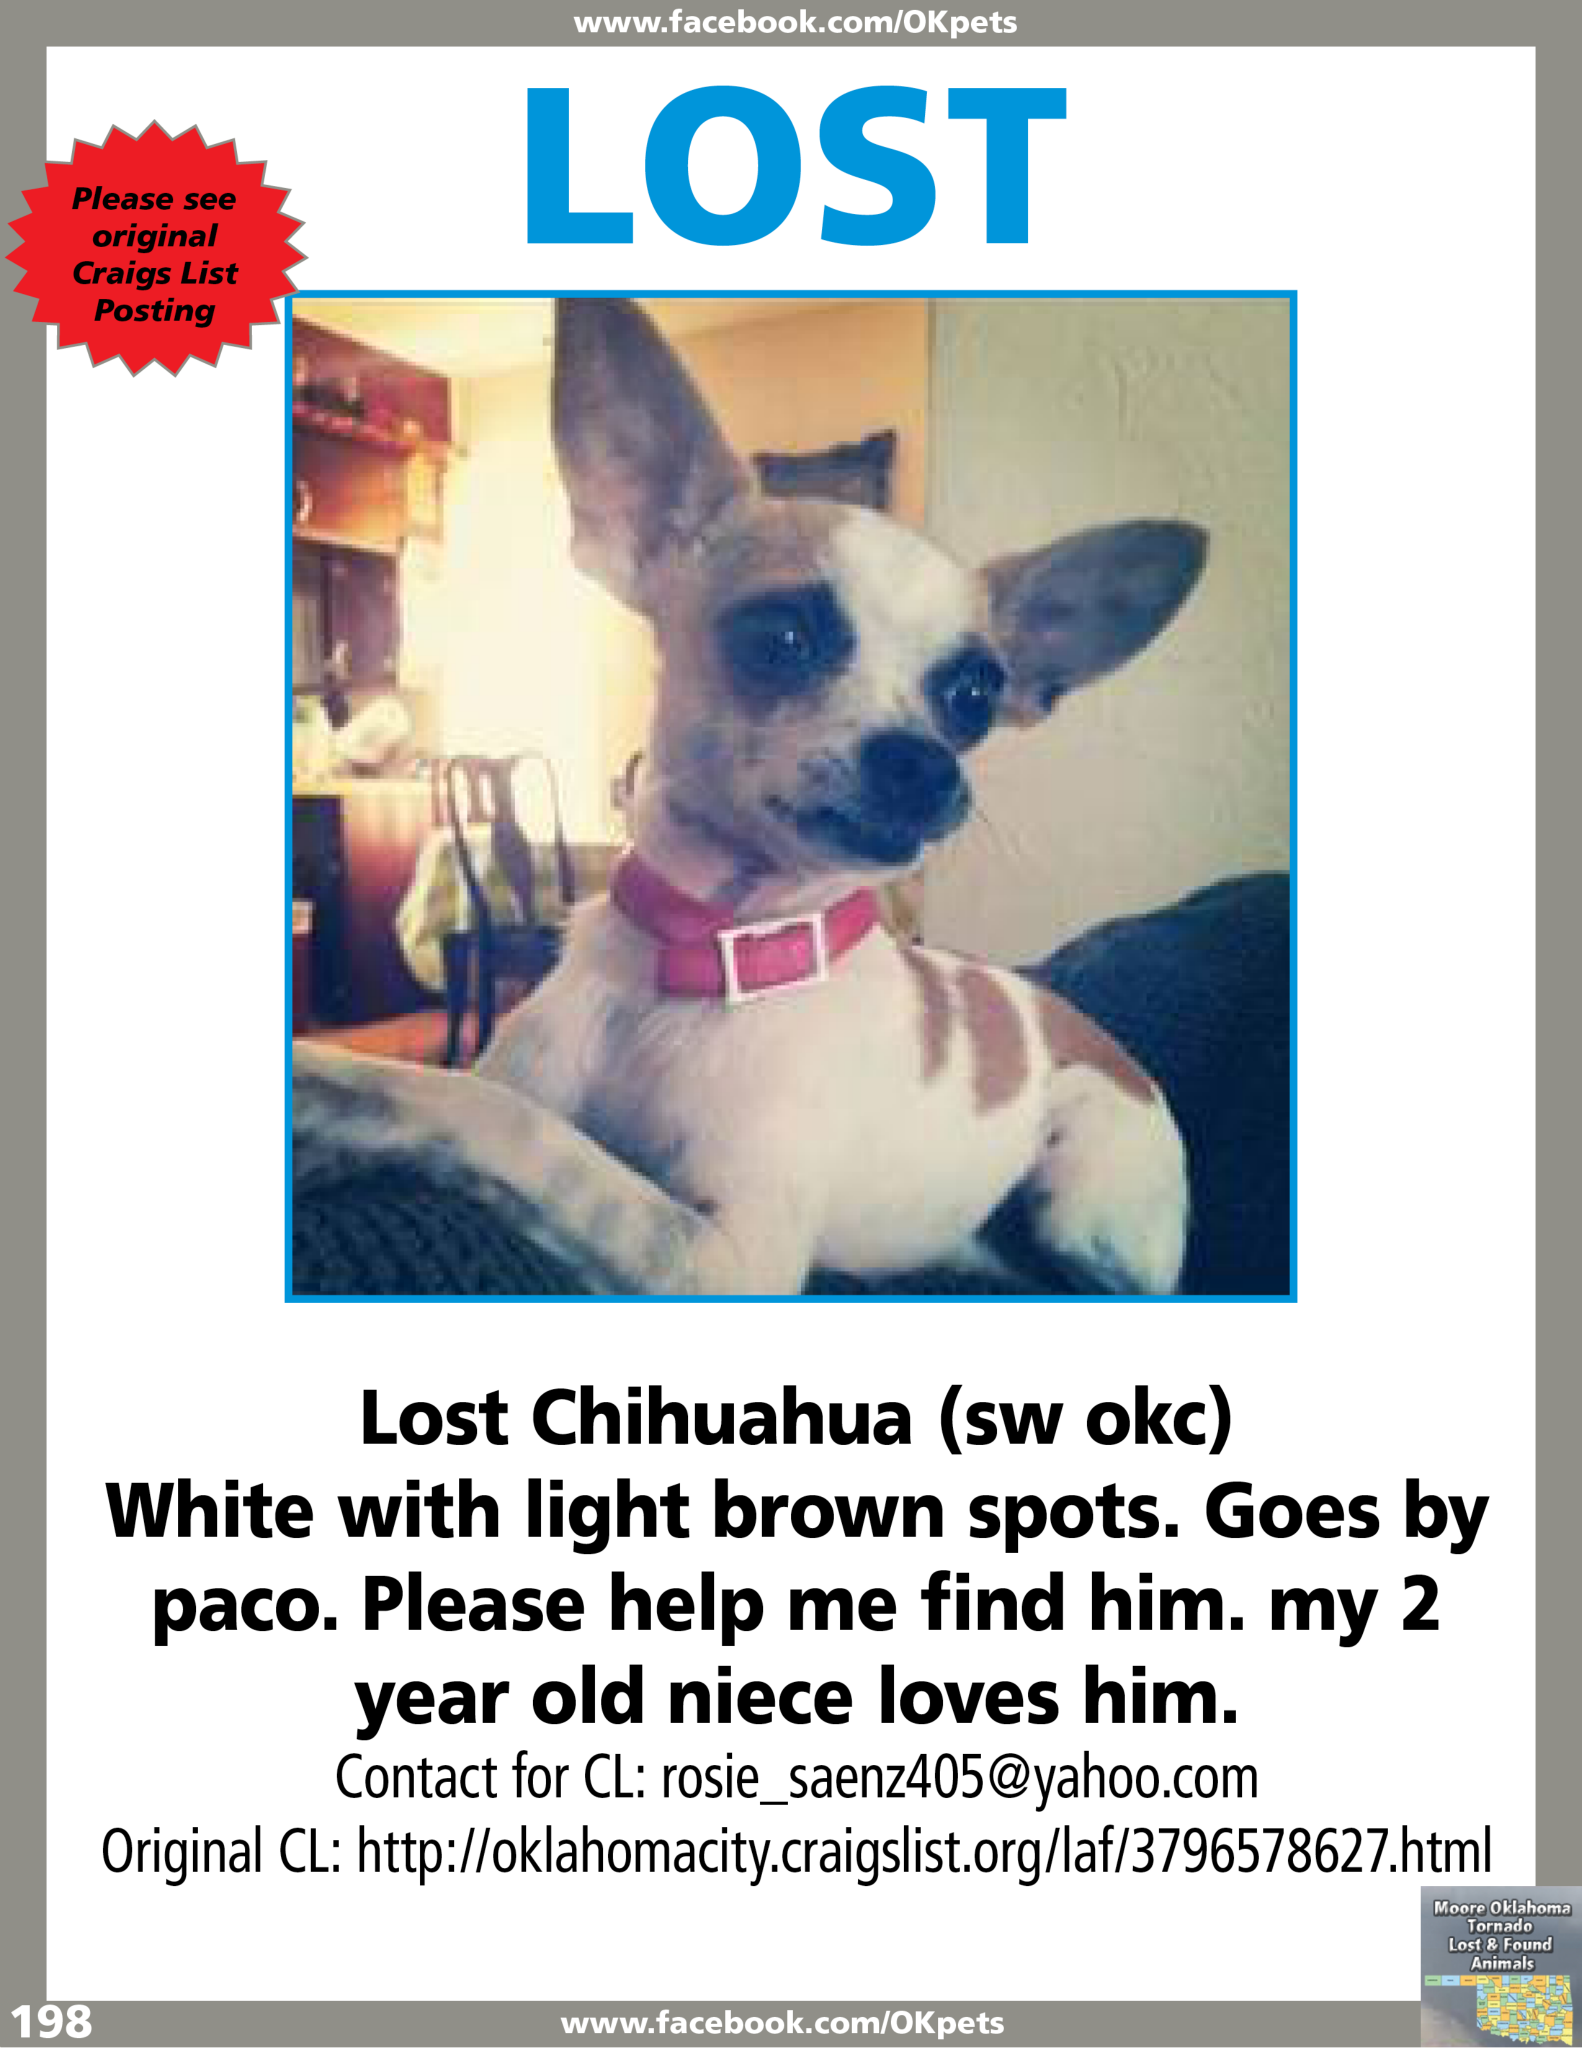 See Attached Flyer Fb Page Moore Oklahoma Tornado Lost And Found Animals Losing A Pet Chihuahua Pets